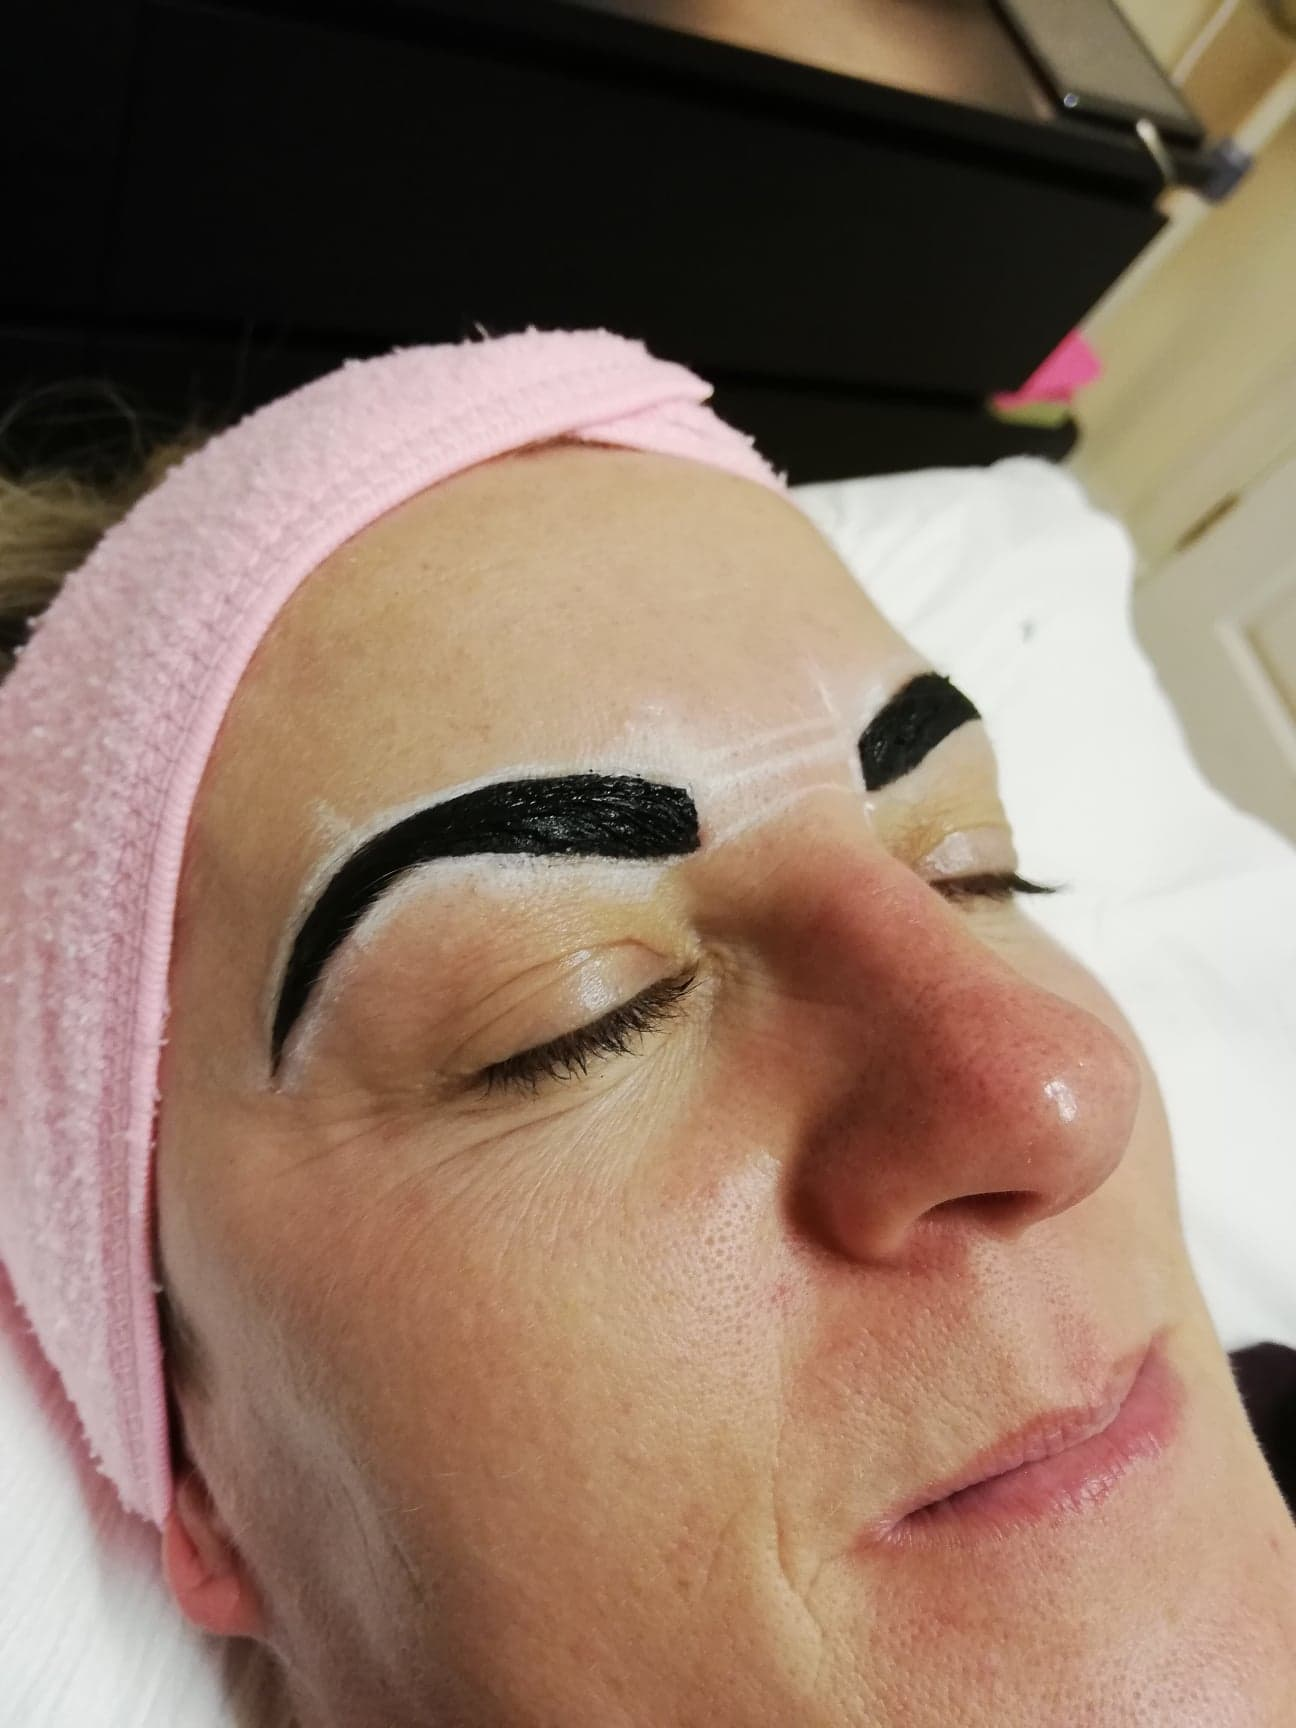 Henna developing, results are never as black as the henna tint - The results are much lighter than the henna tint whist it is setting